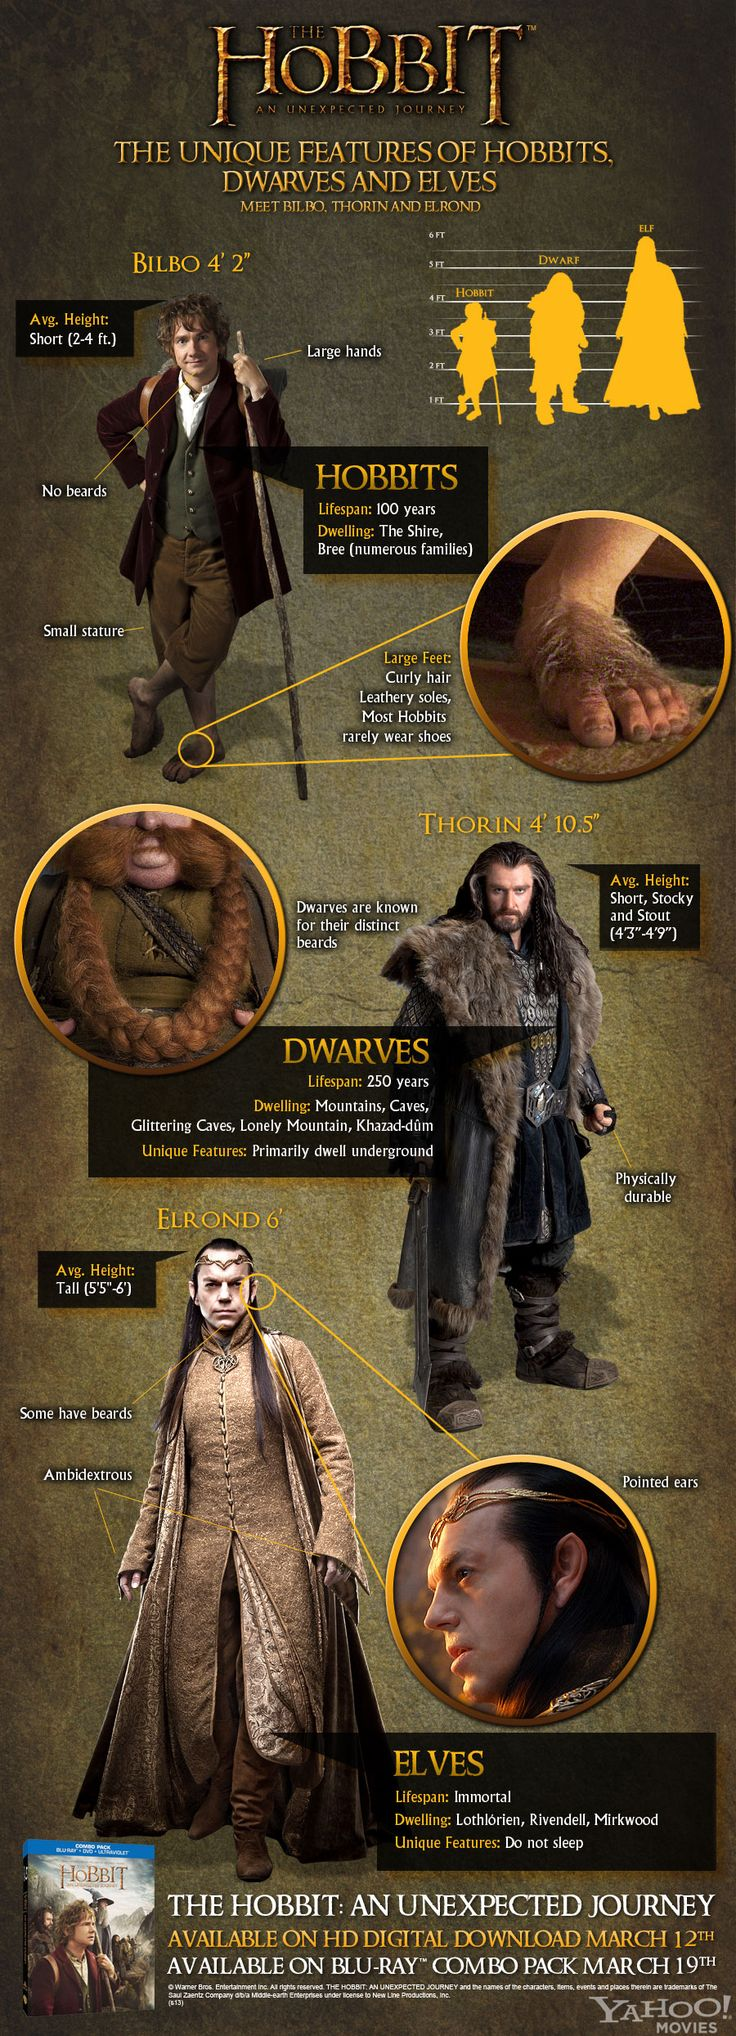 Hobbits Dwarfs and Elves